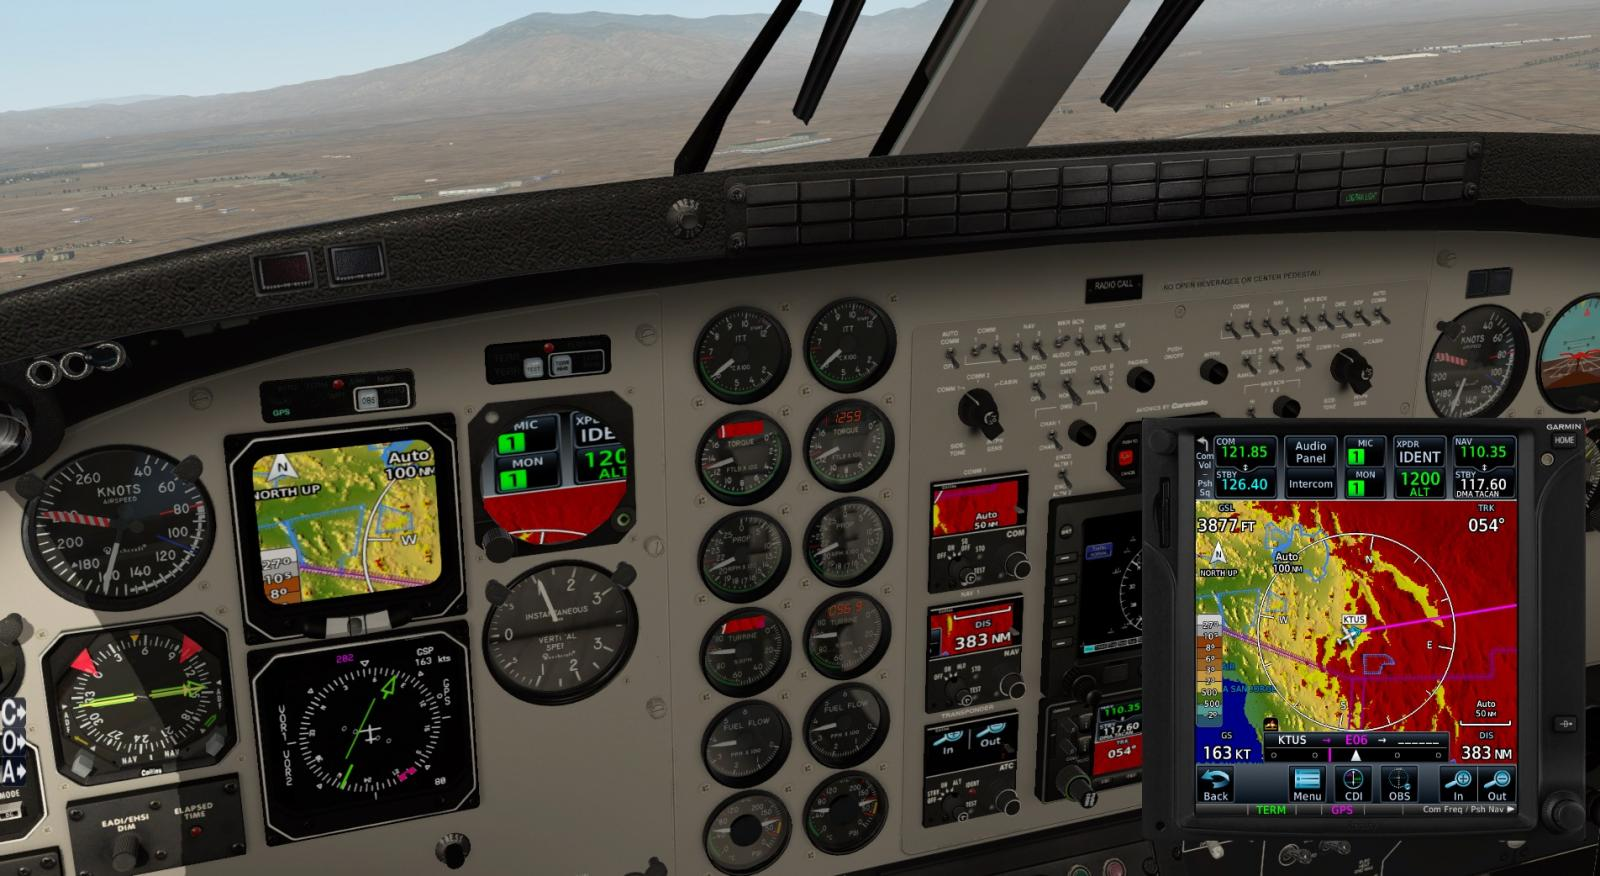 C90 King Air XP11 & GTN750 - Solved - Carenado - Alabeo Support - X